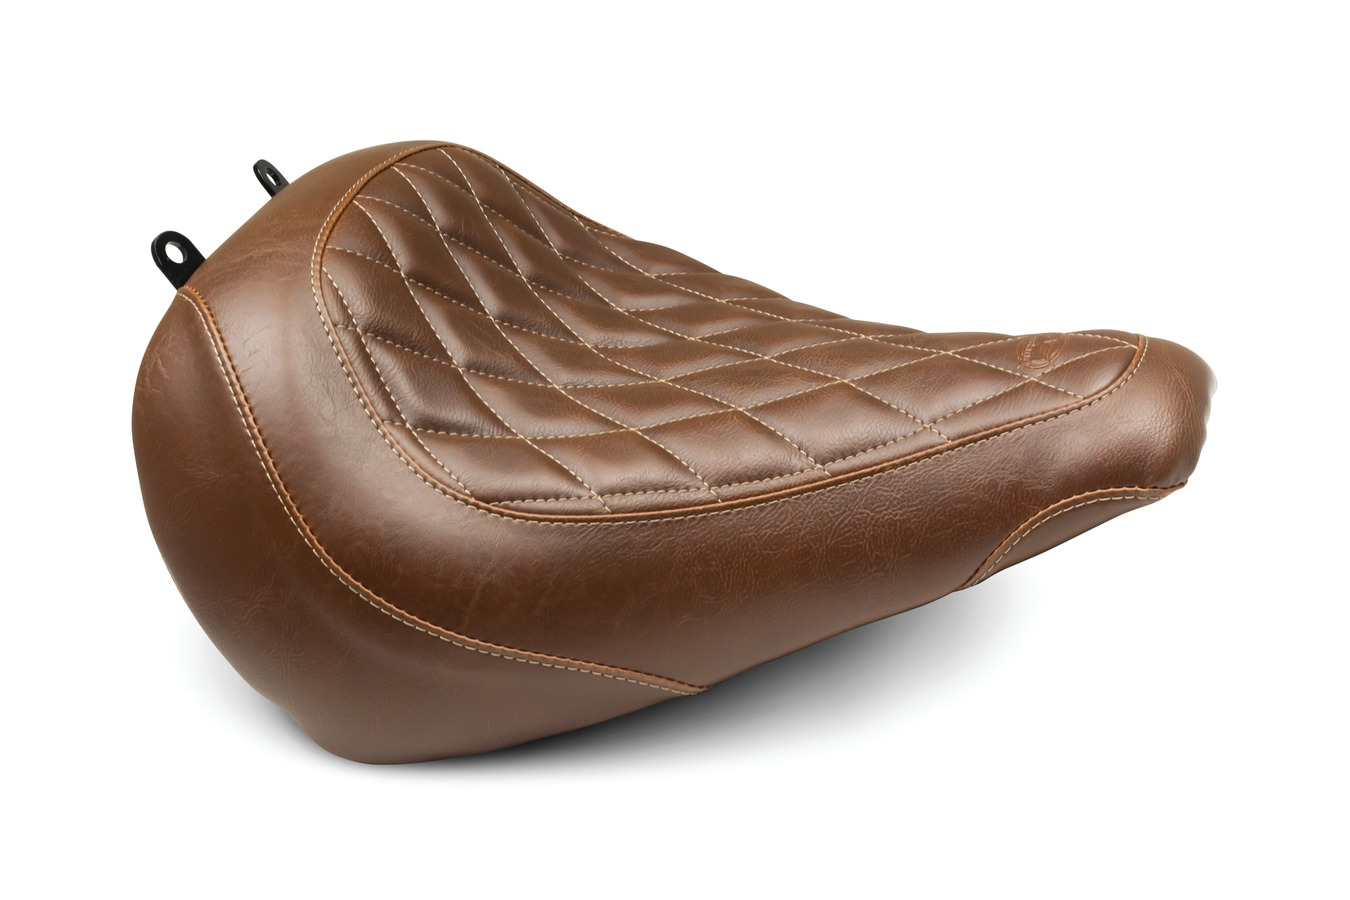 Wide Tripper™ Solo Seat for H-D Fat Boy